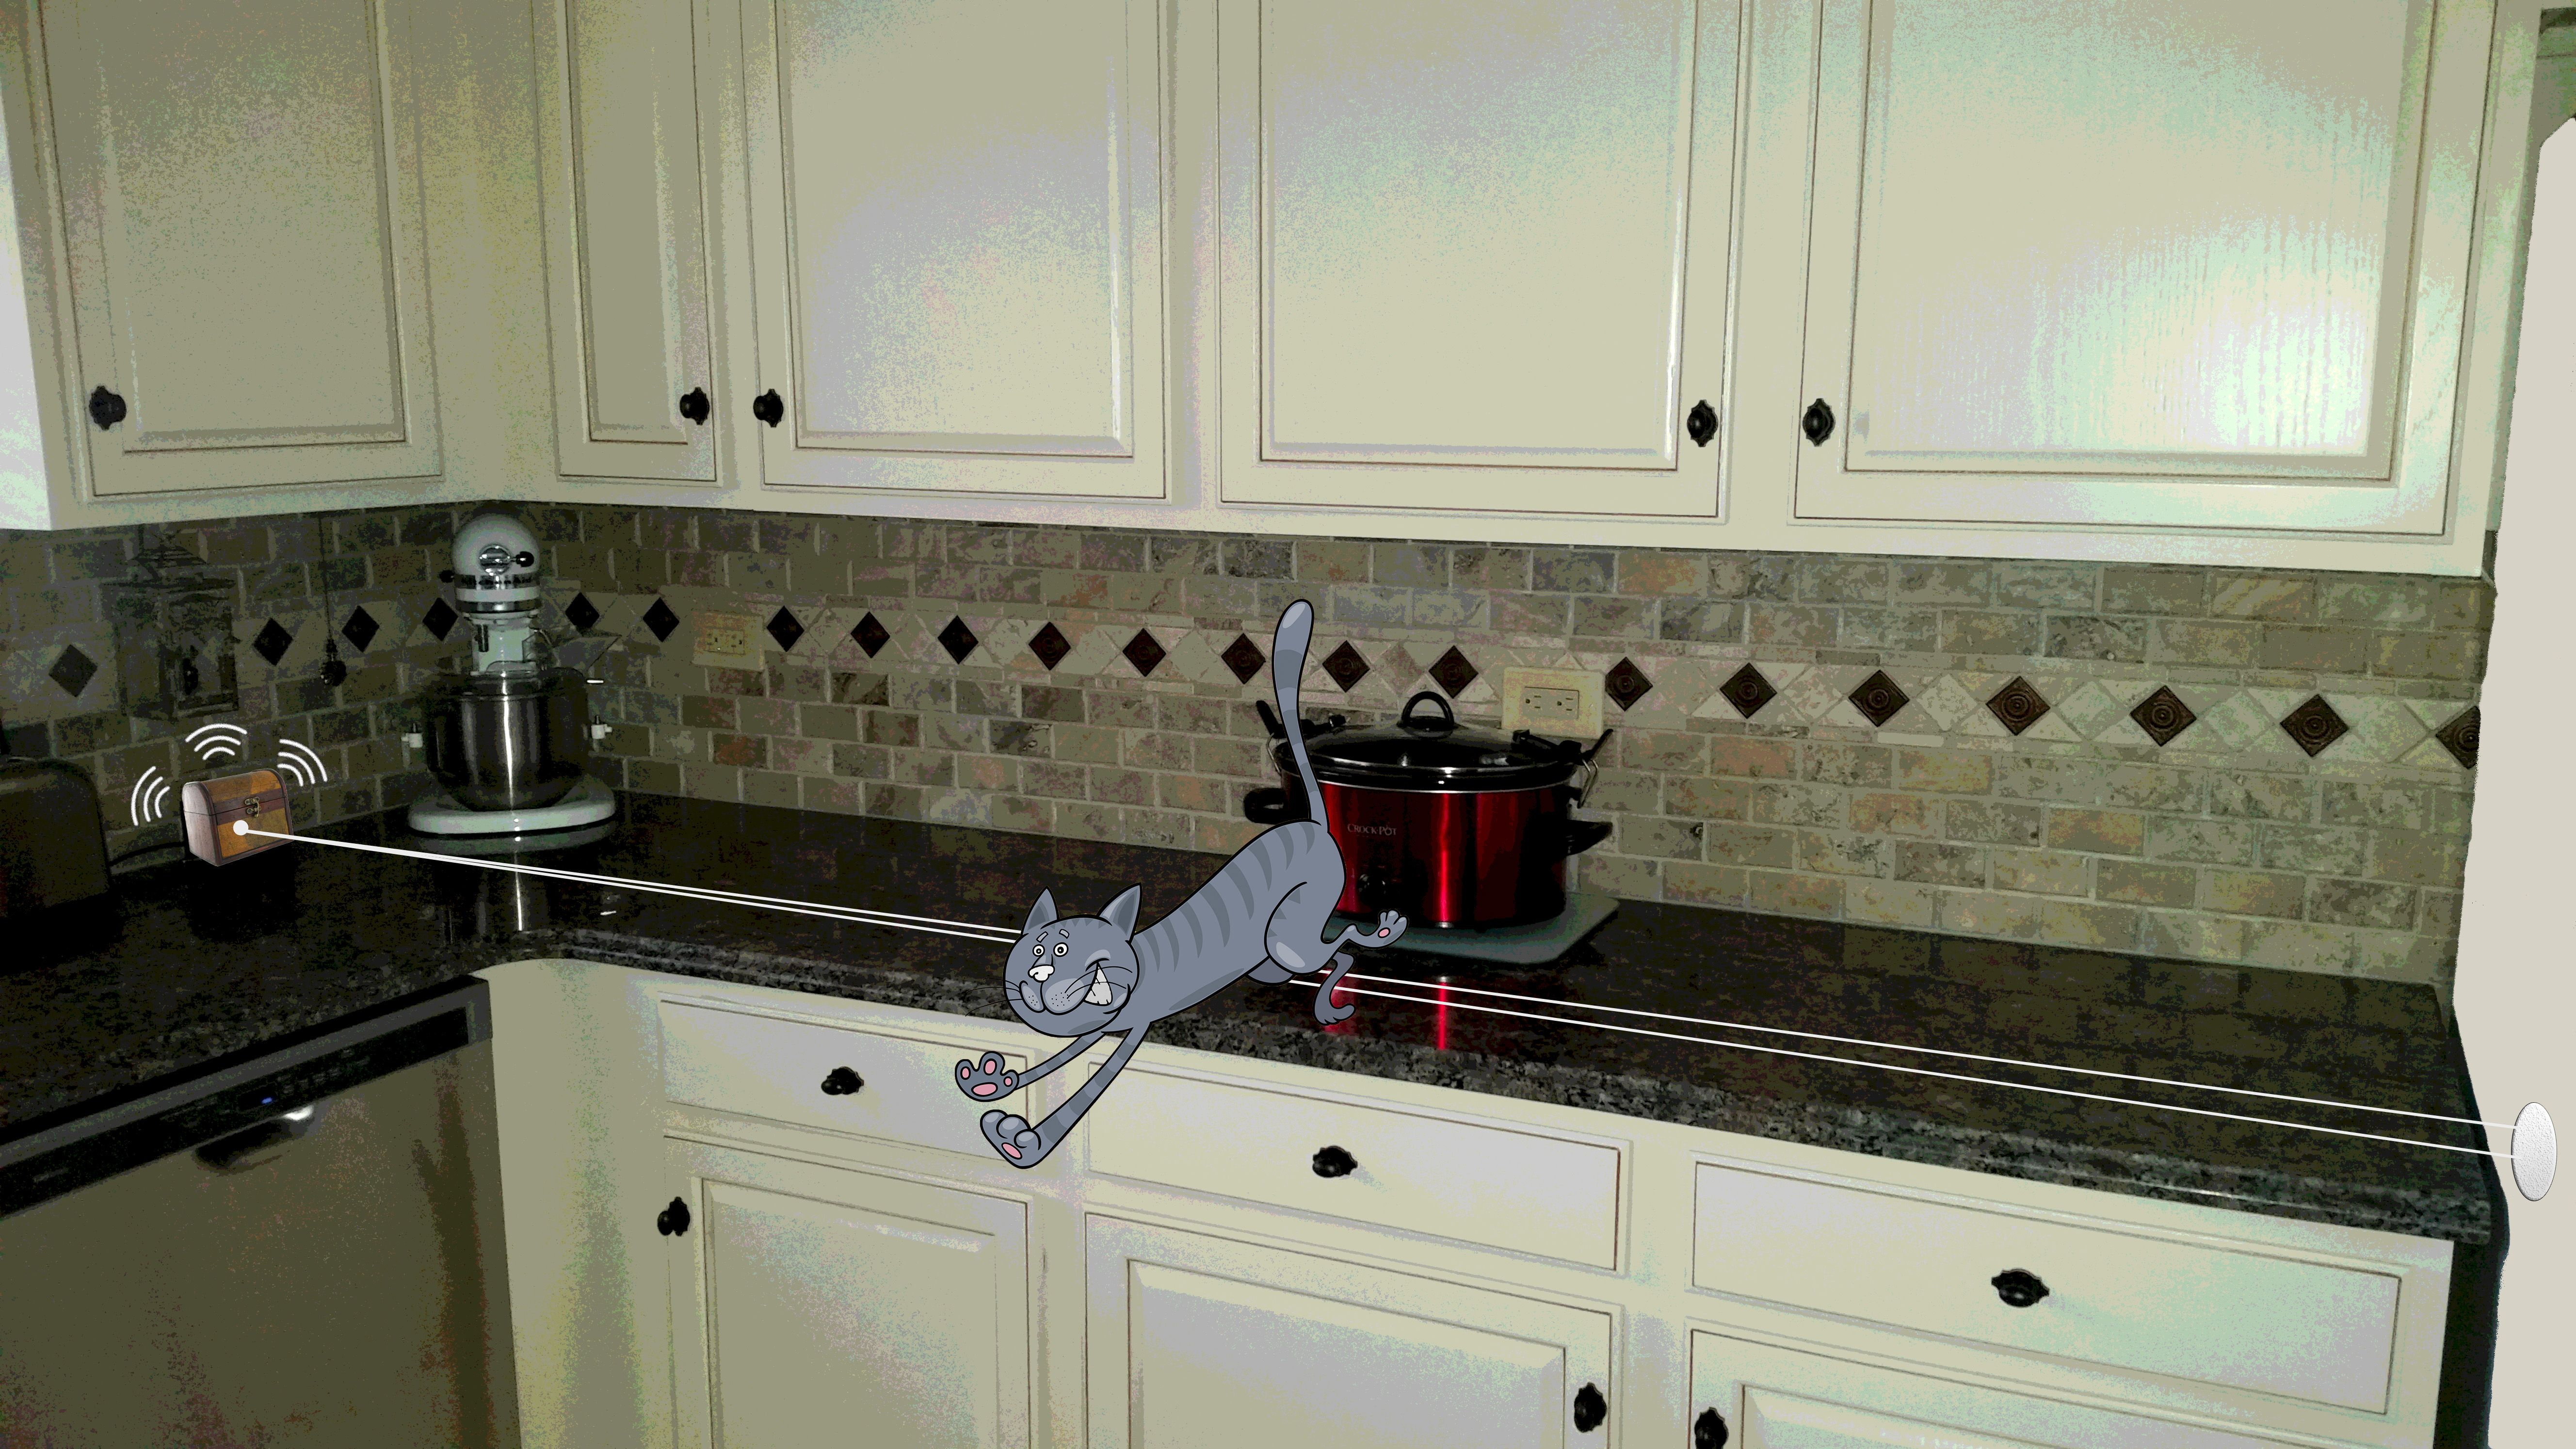 Keep Cats Off Your Counters With The New Cat Tail Counter Alarm